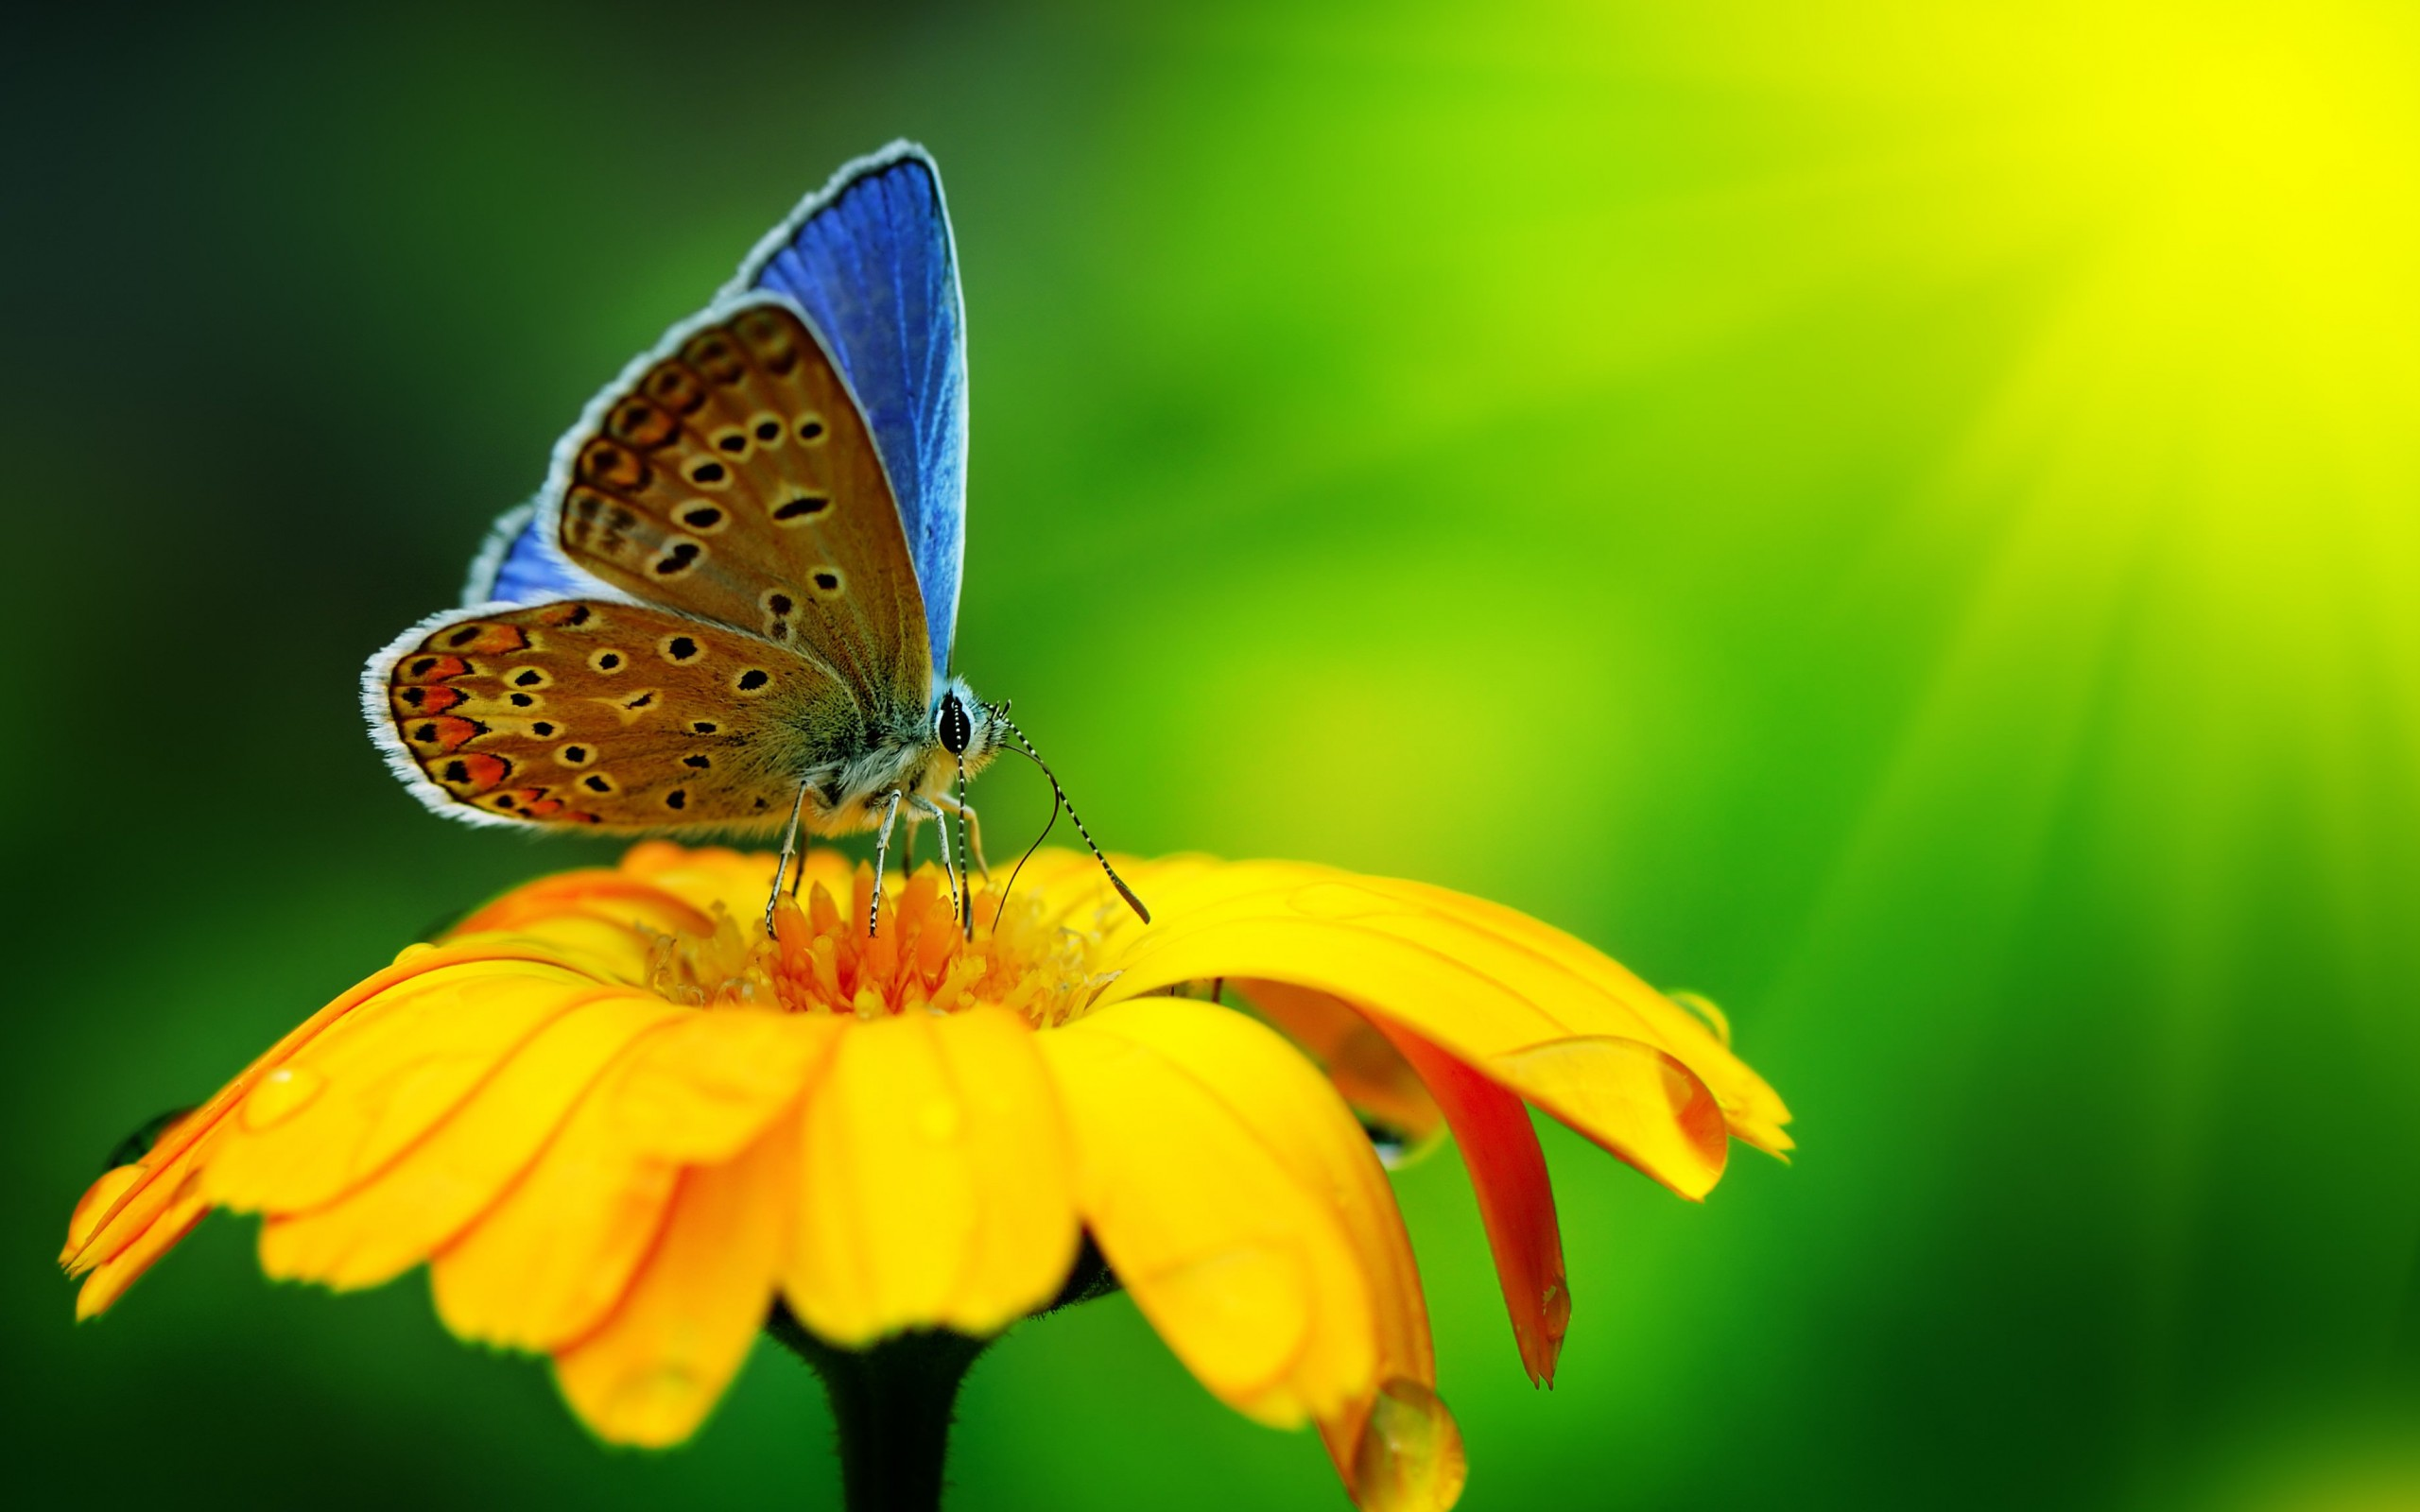 Butterfly Collecting Pollen Wallpaper for Desktop 2560x1600